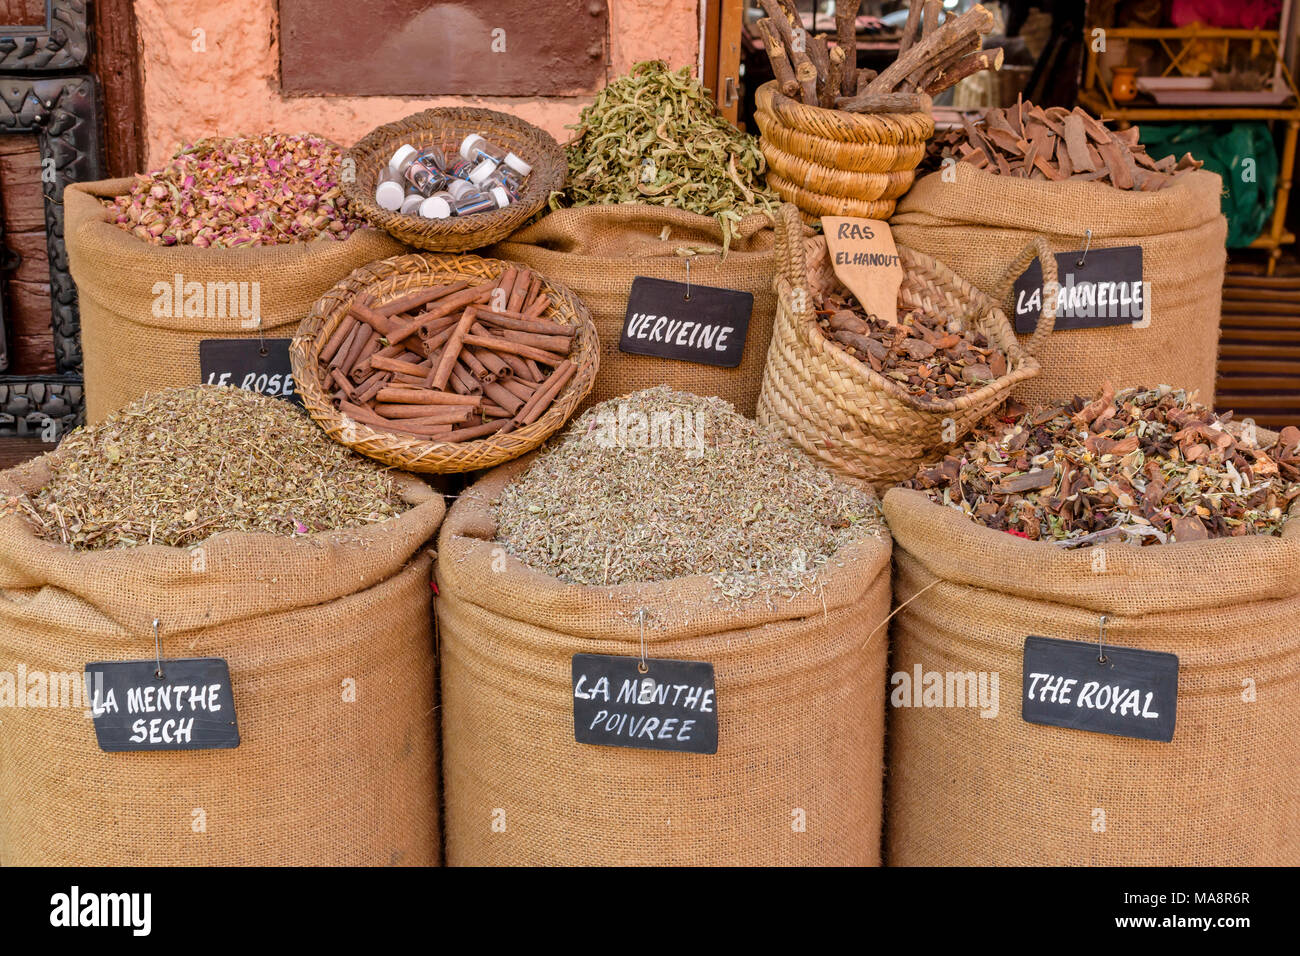 MOROCCO MARRAKECH PLACE JEMAA EL FNA MEDINA AND SOUK  SHOPS AND STALLS SPICES IN SACKS WITH LABELS - Stock Image